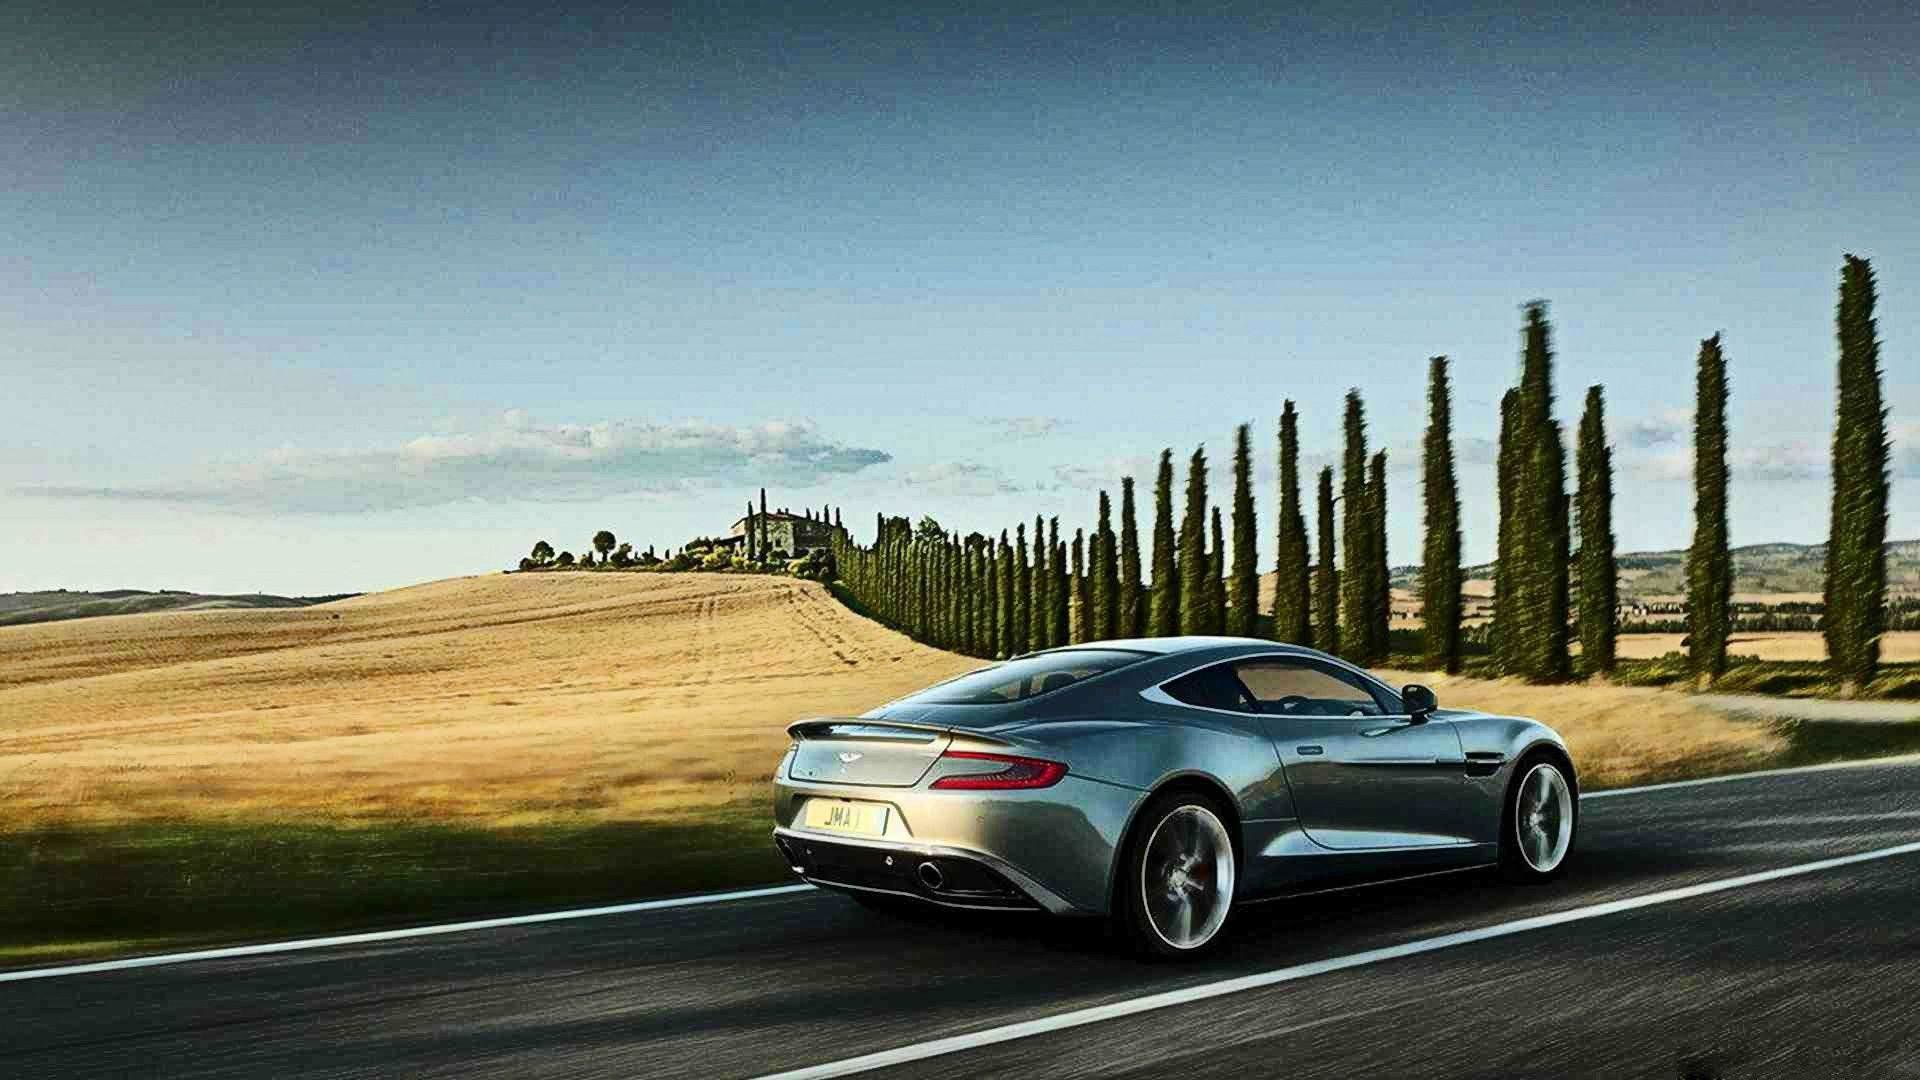 Latest Aston Martin Wallpapers Hd Wallpaper Cave Free Download